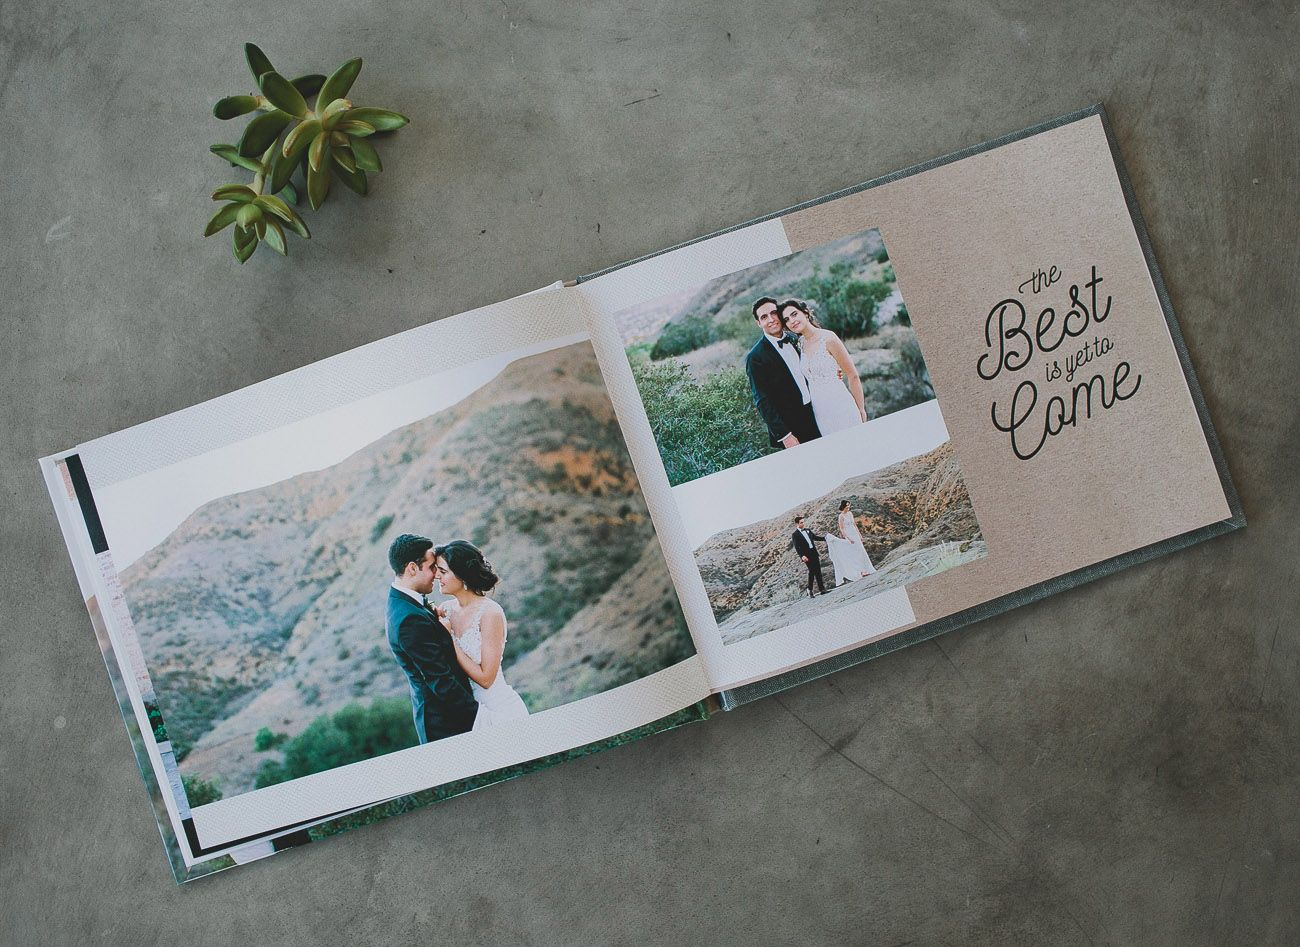 Create Your Wedding Album + Cards with Mixbook | Album, Weddings ...